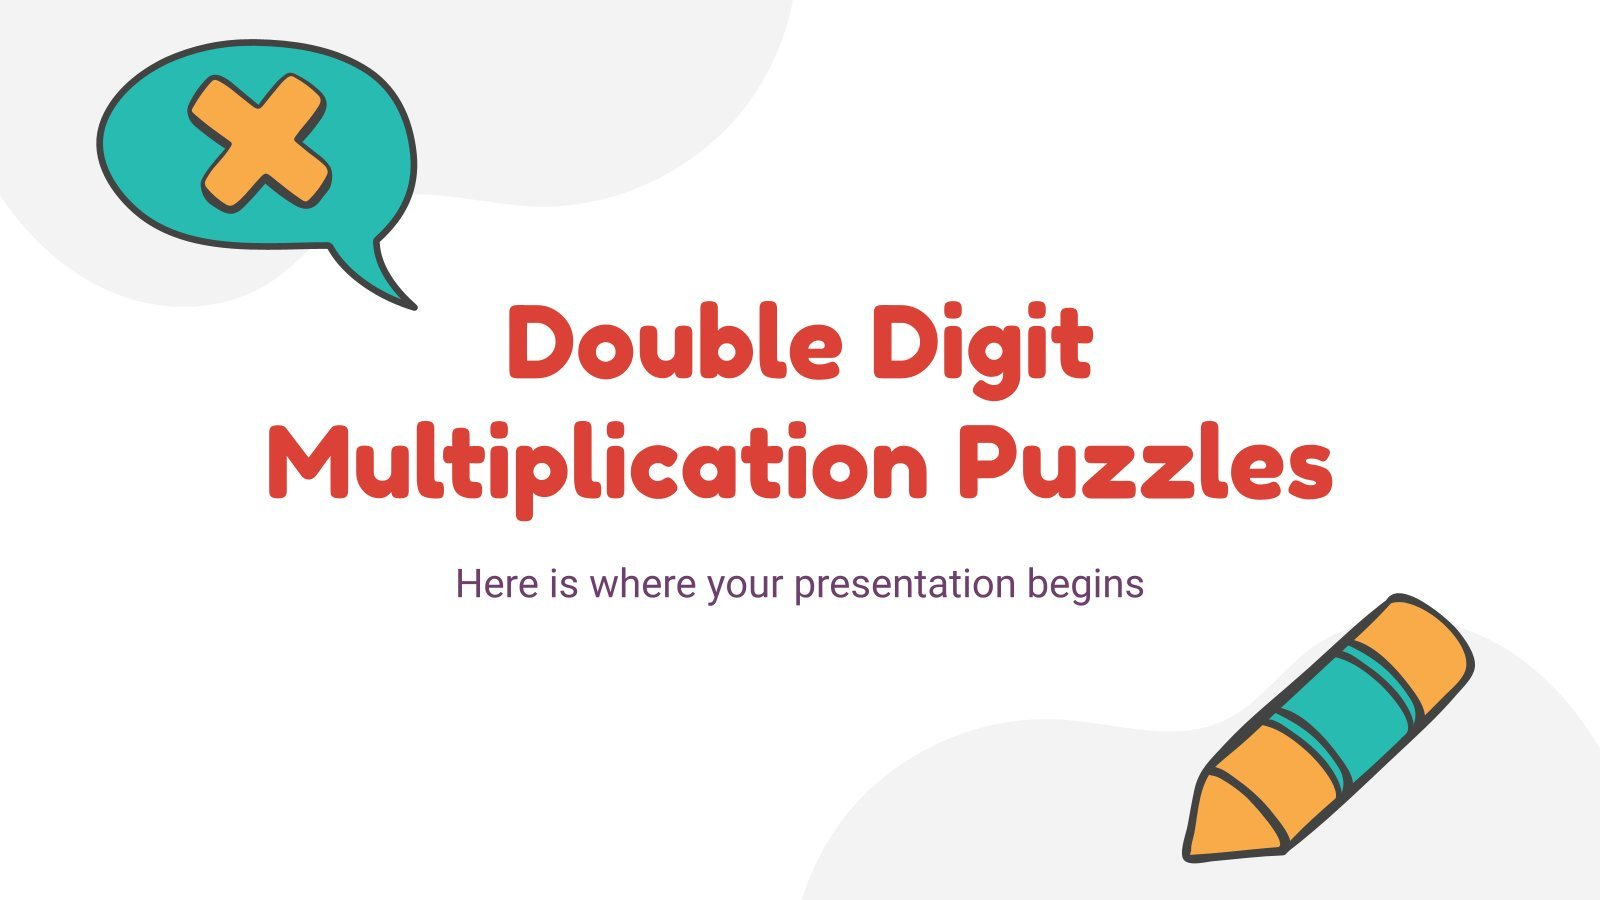 Double Digit Multiplication Puzzles presentation template